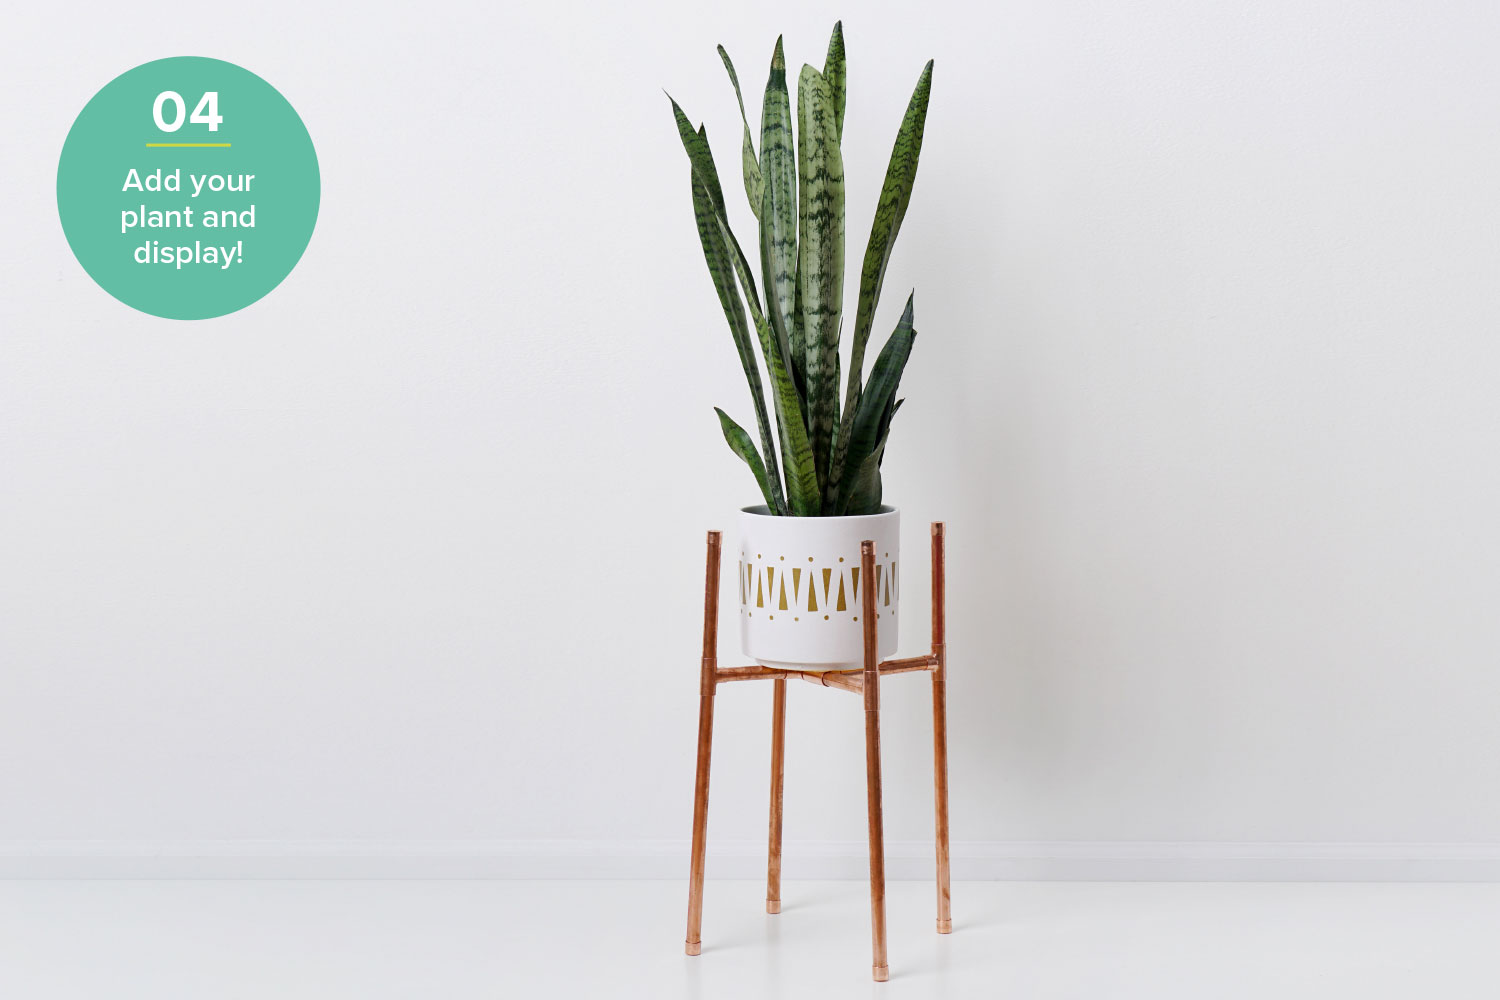 diy plant stand hardware hacks step 4 copper pipe